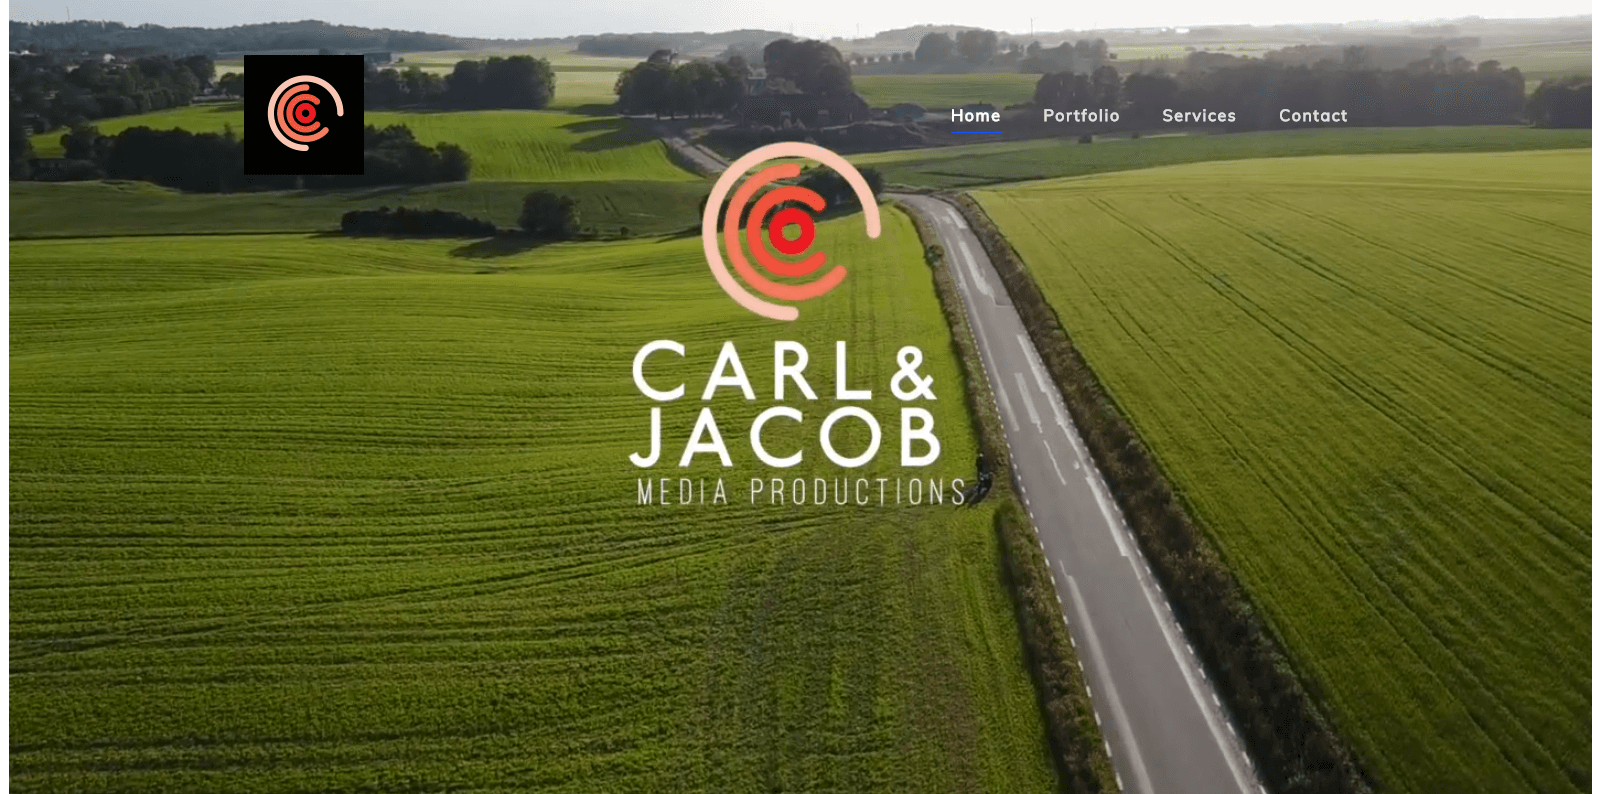 Carl & Jacob Media Productions